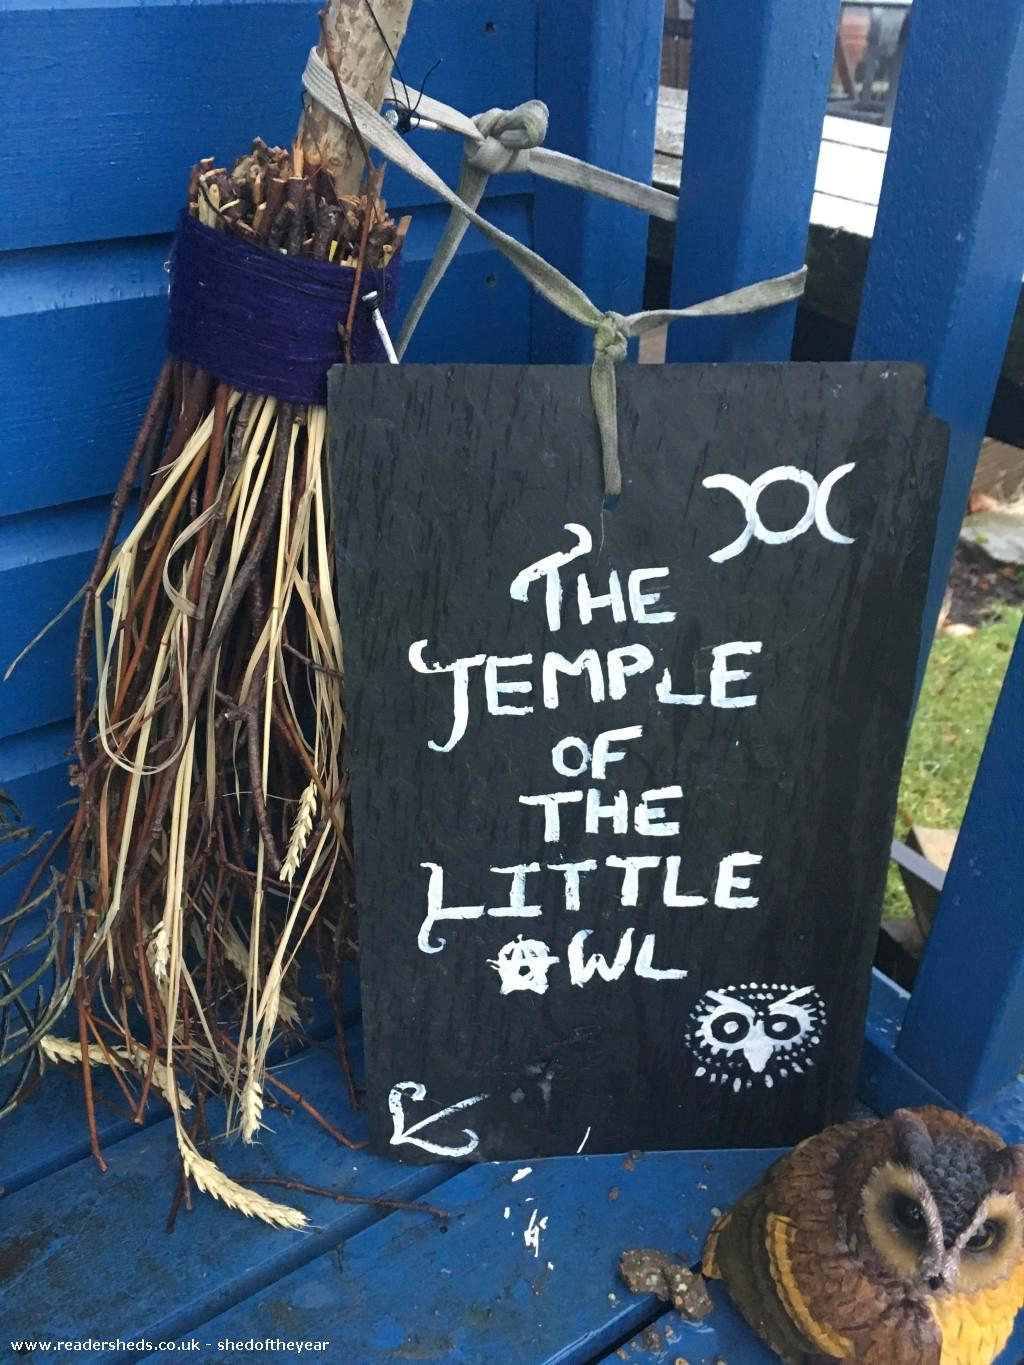 The Temple of the Little Owl